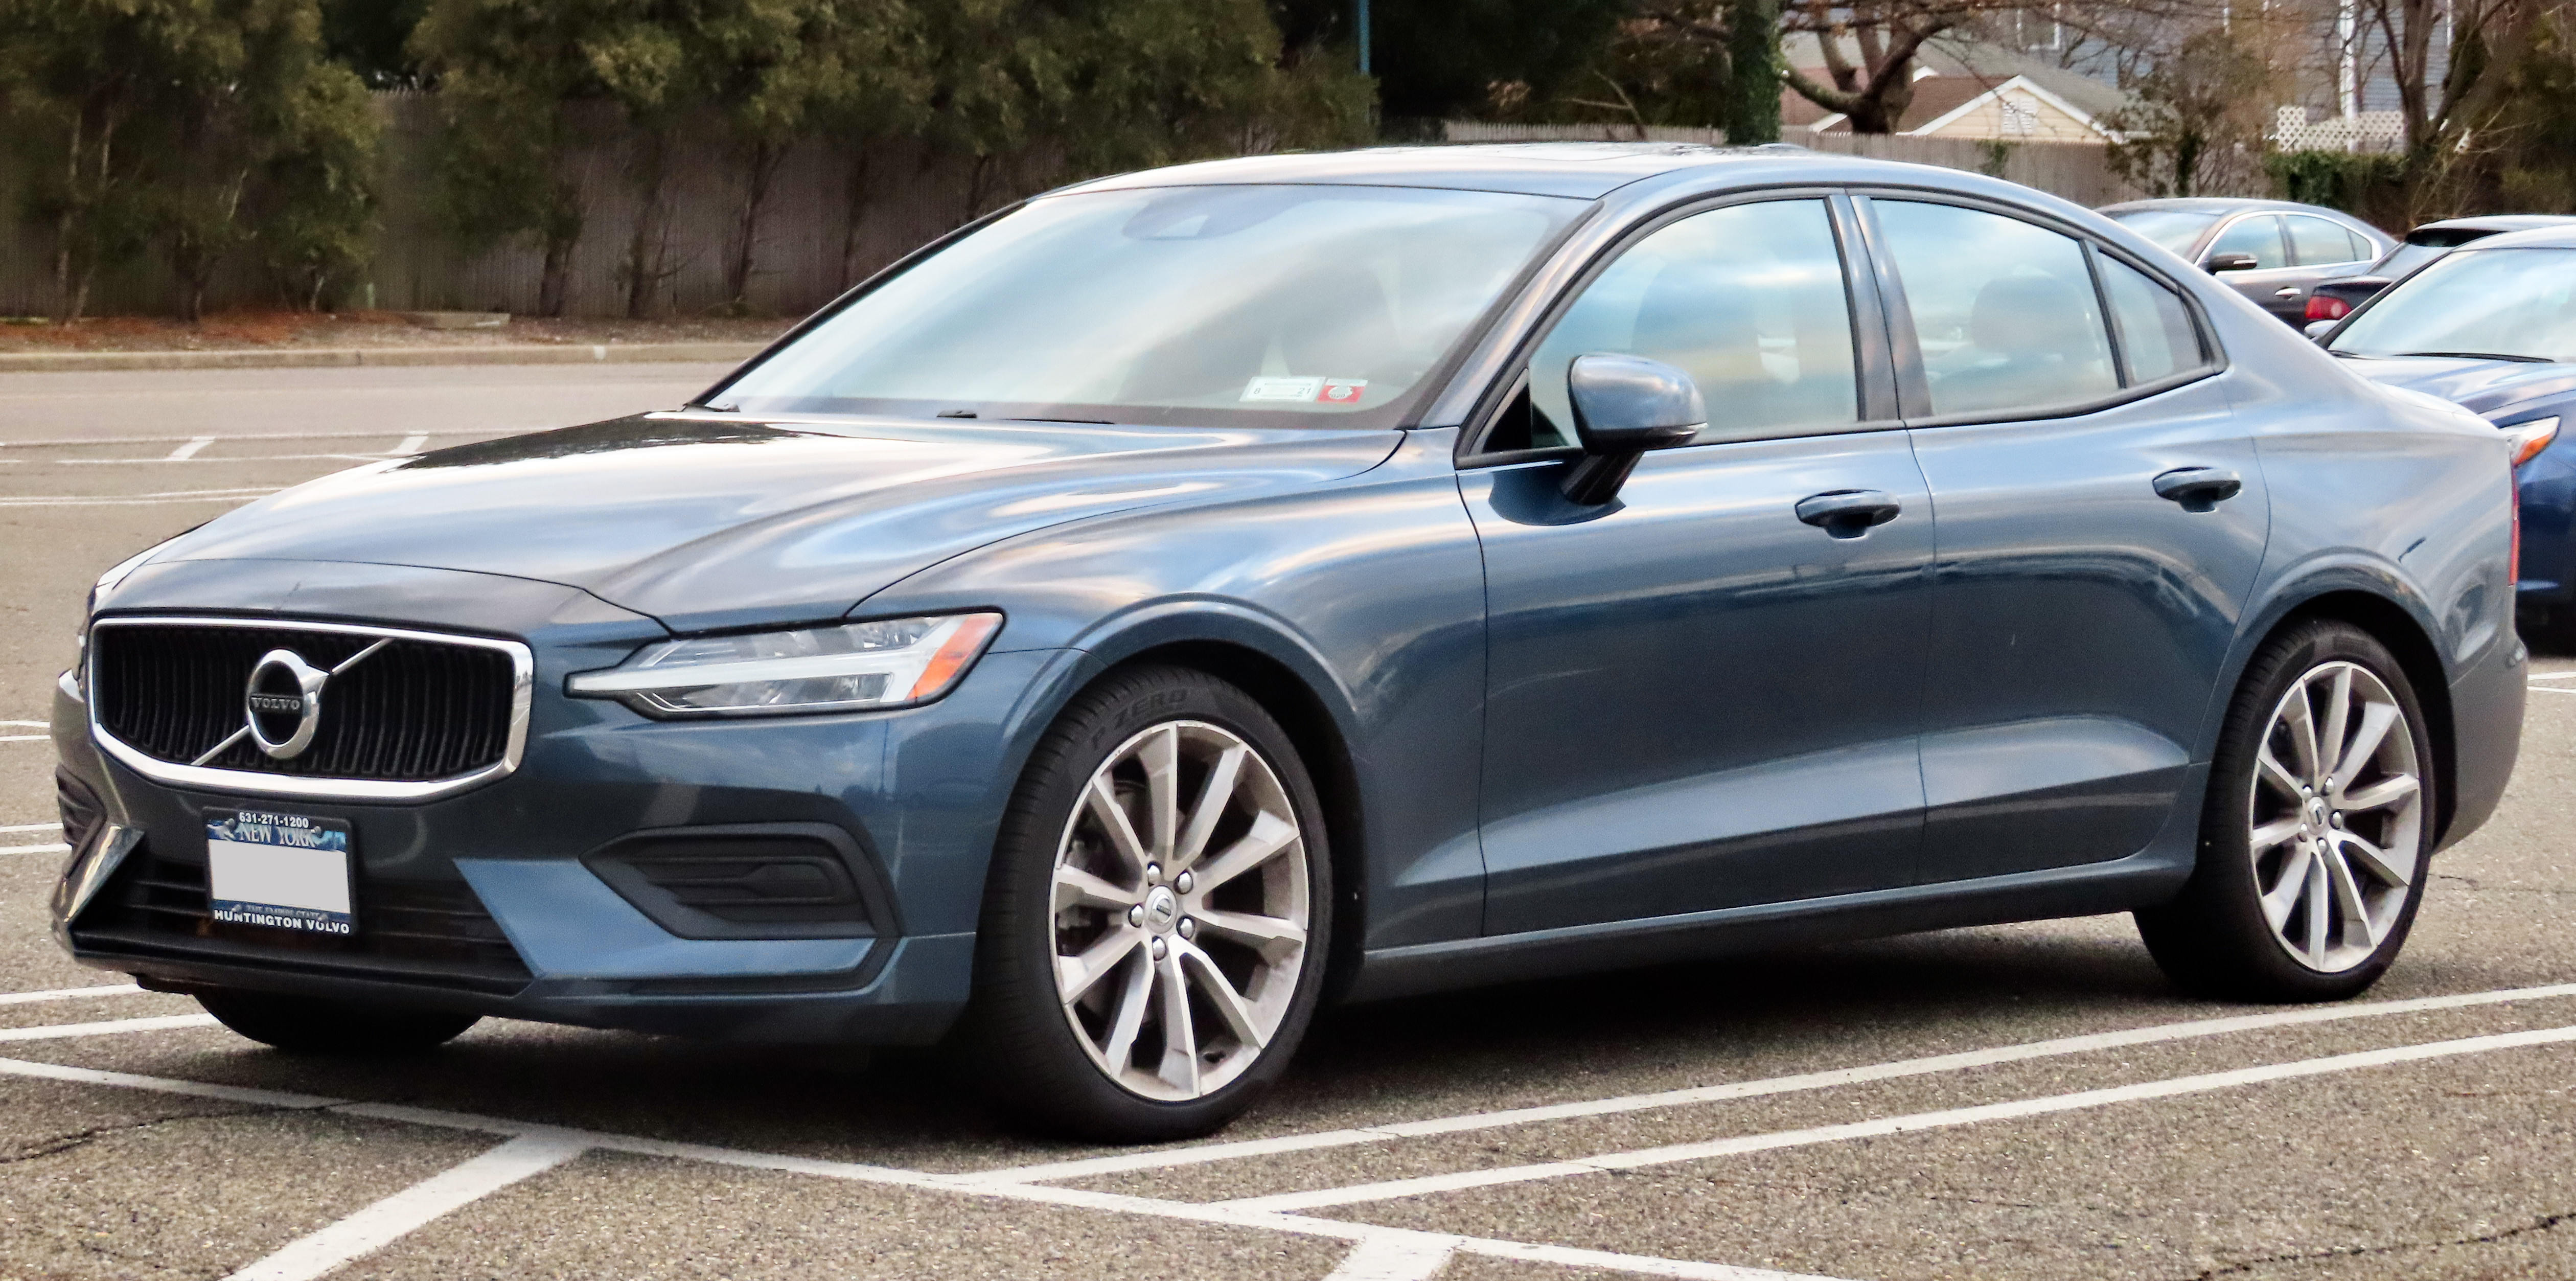 File:2019 Volvo S60 T5, front 1.26.20.jpg - Wikimedia Commons